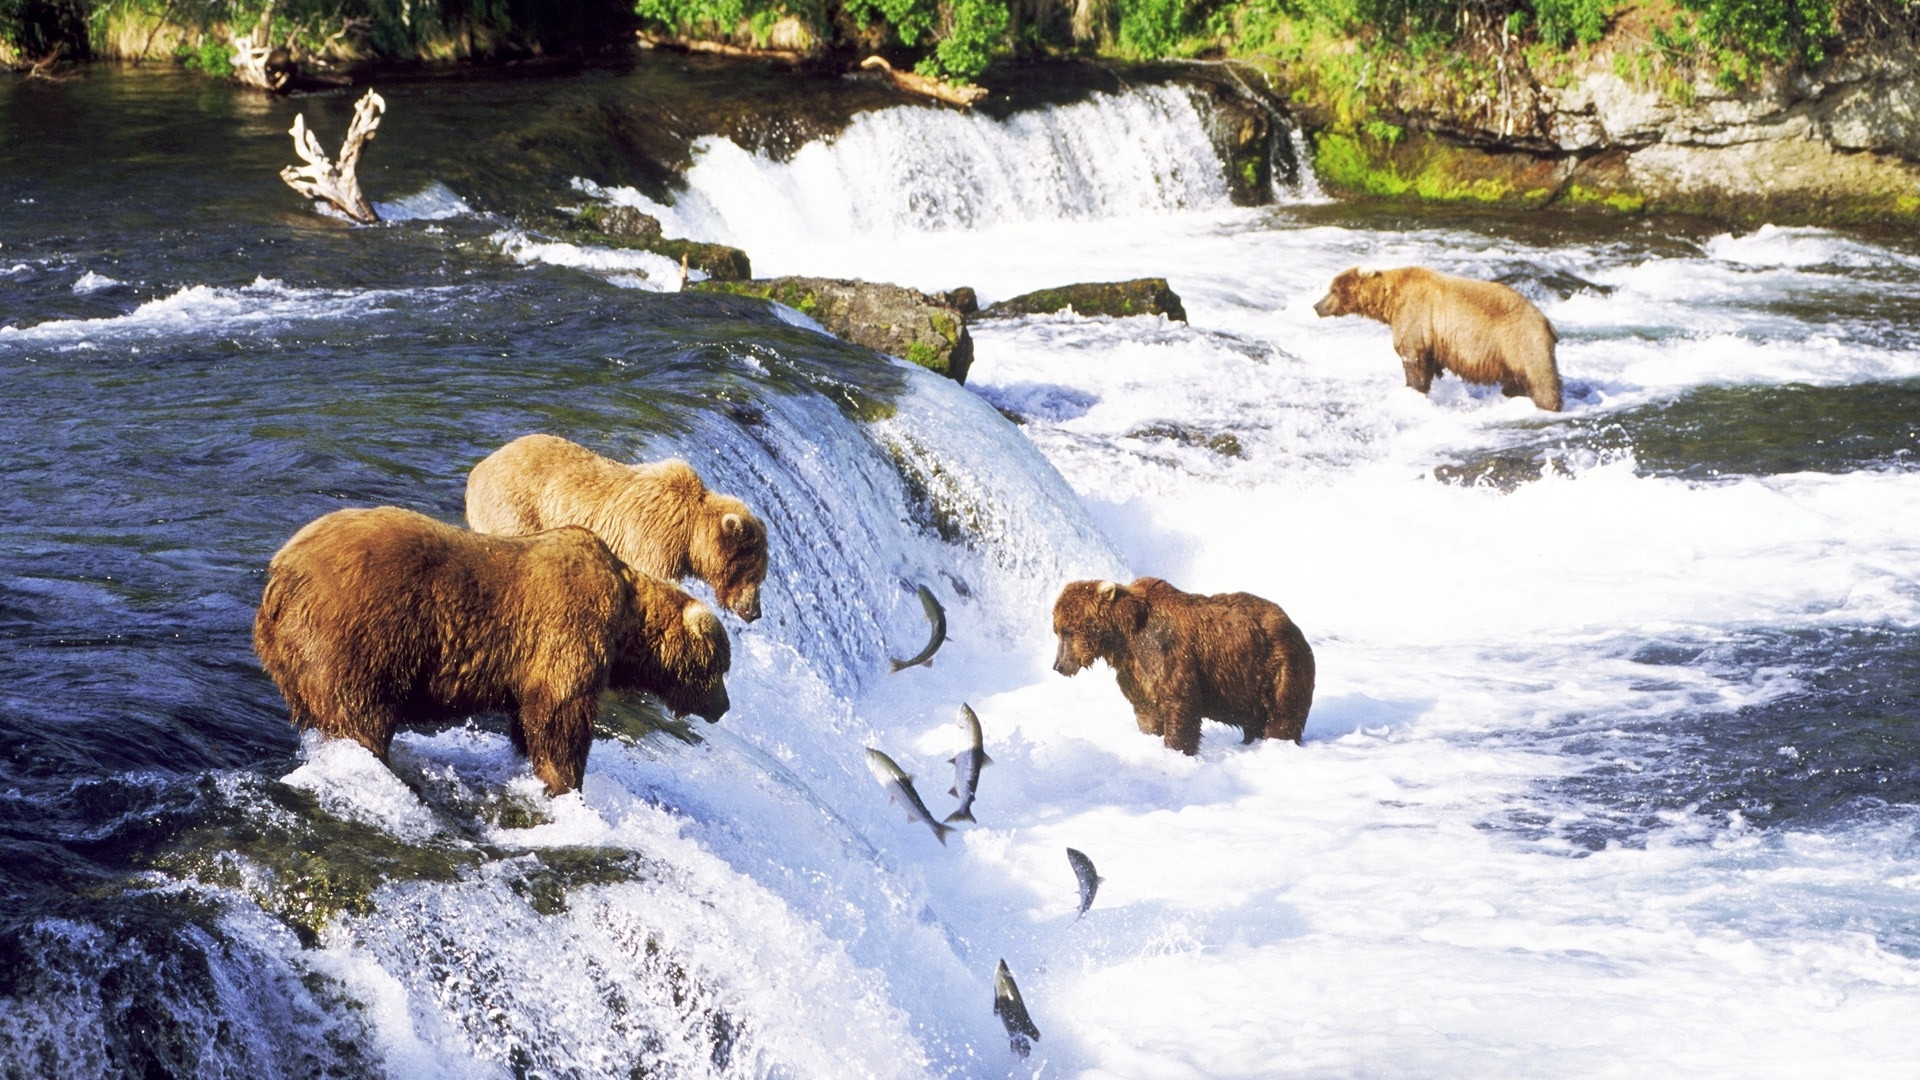 Grizzly-bears-alaska-fishes-salmon-rivers-nature-1920x1080-UP-wallpaper-wpc5805604